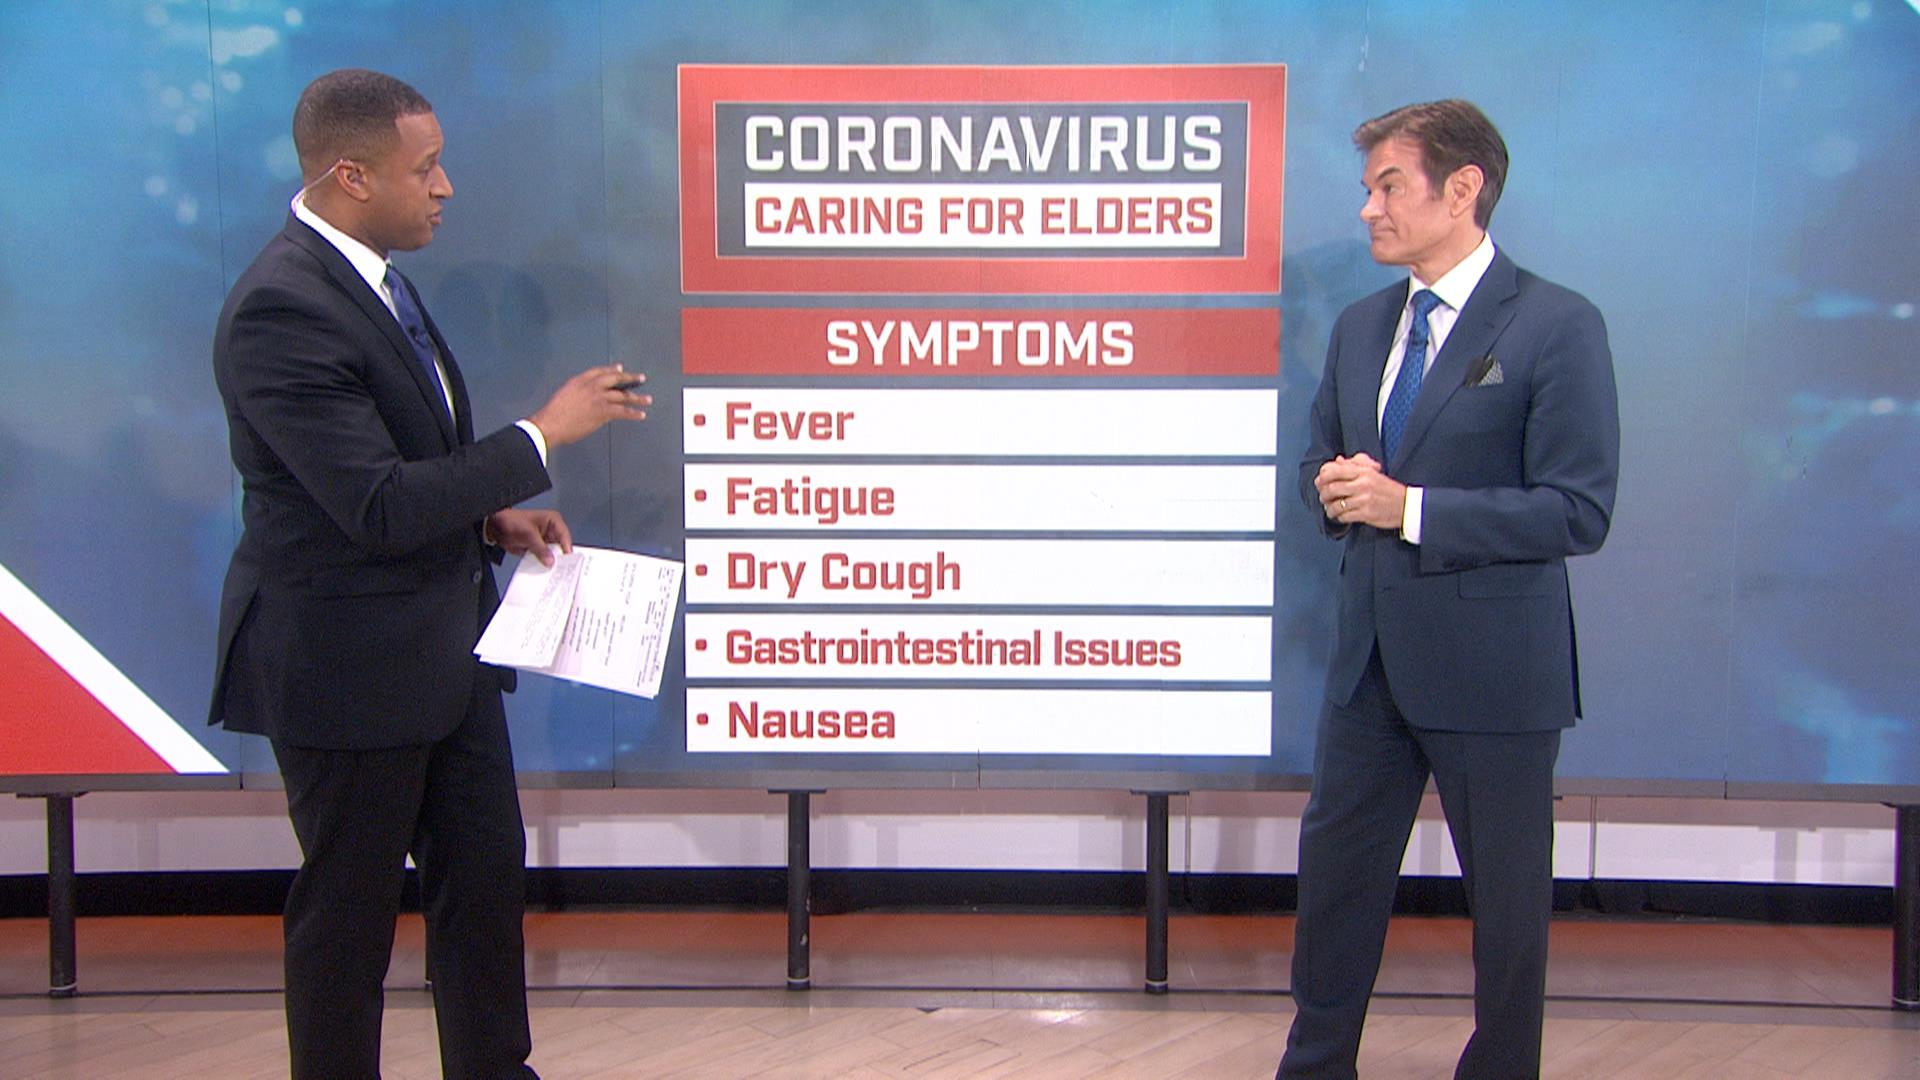 Dr Oz Explains How To Protect Older Family Members From Coronavirus